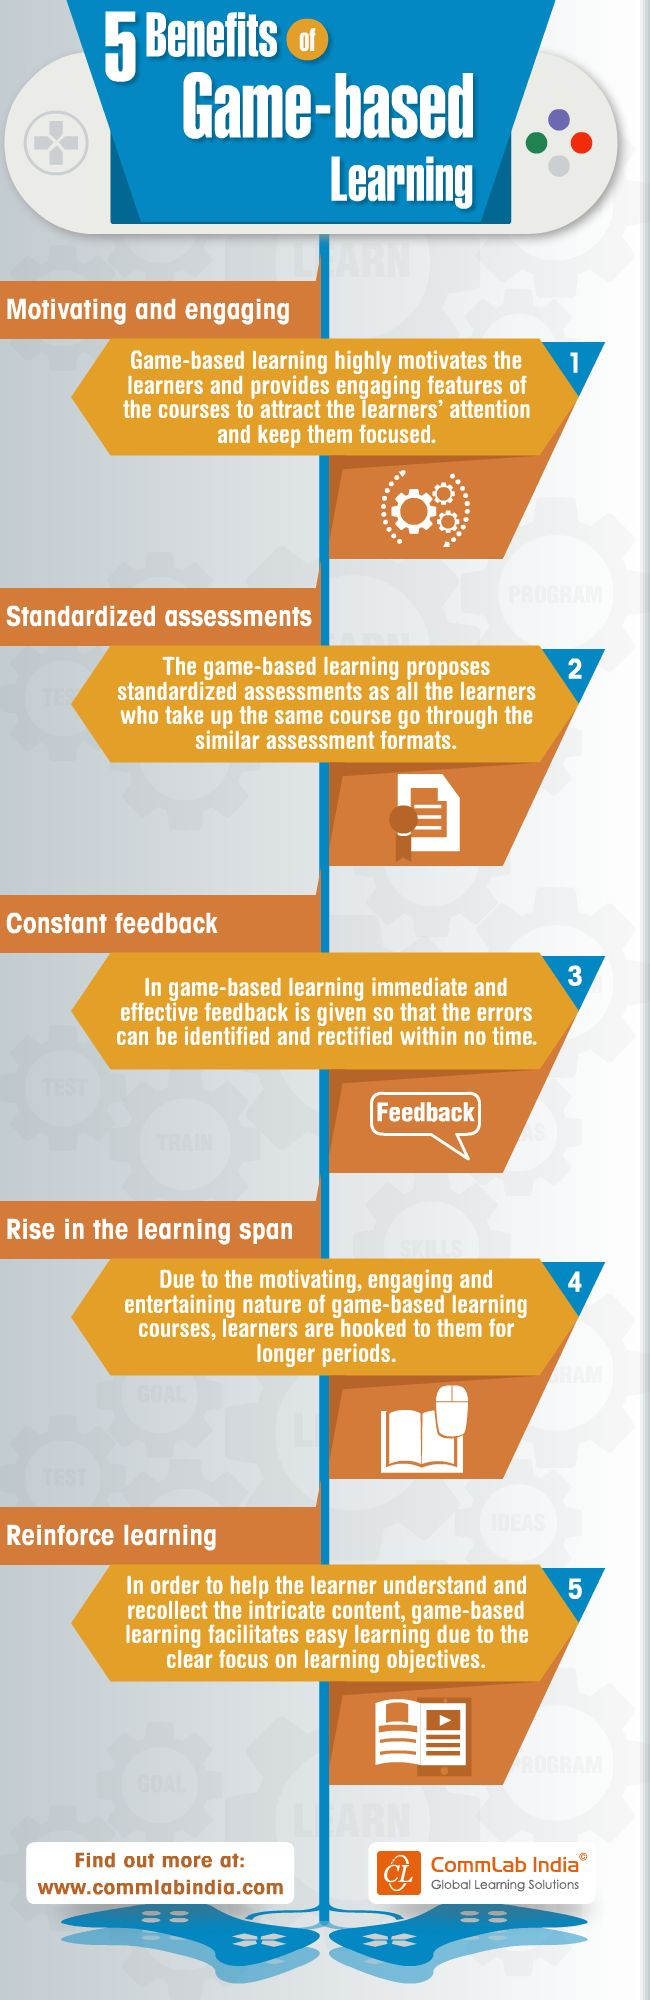 5 Benefits of Game Based Learning [Infographic]